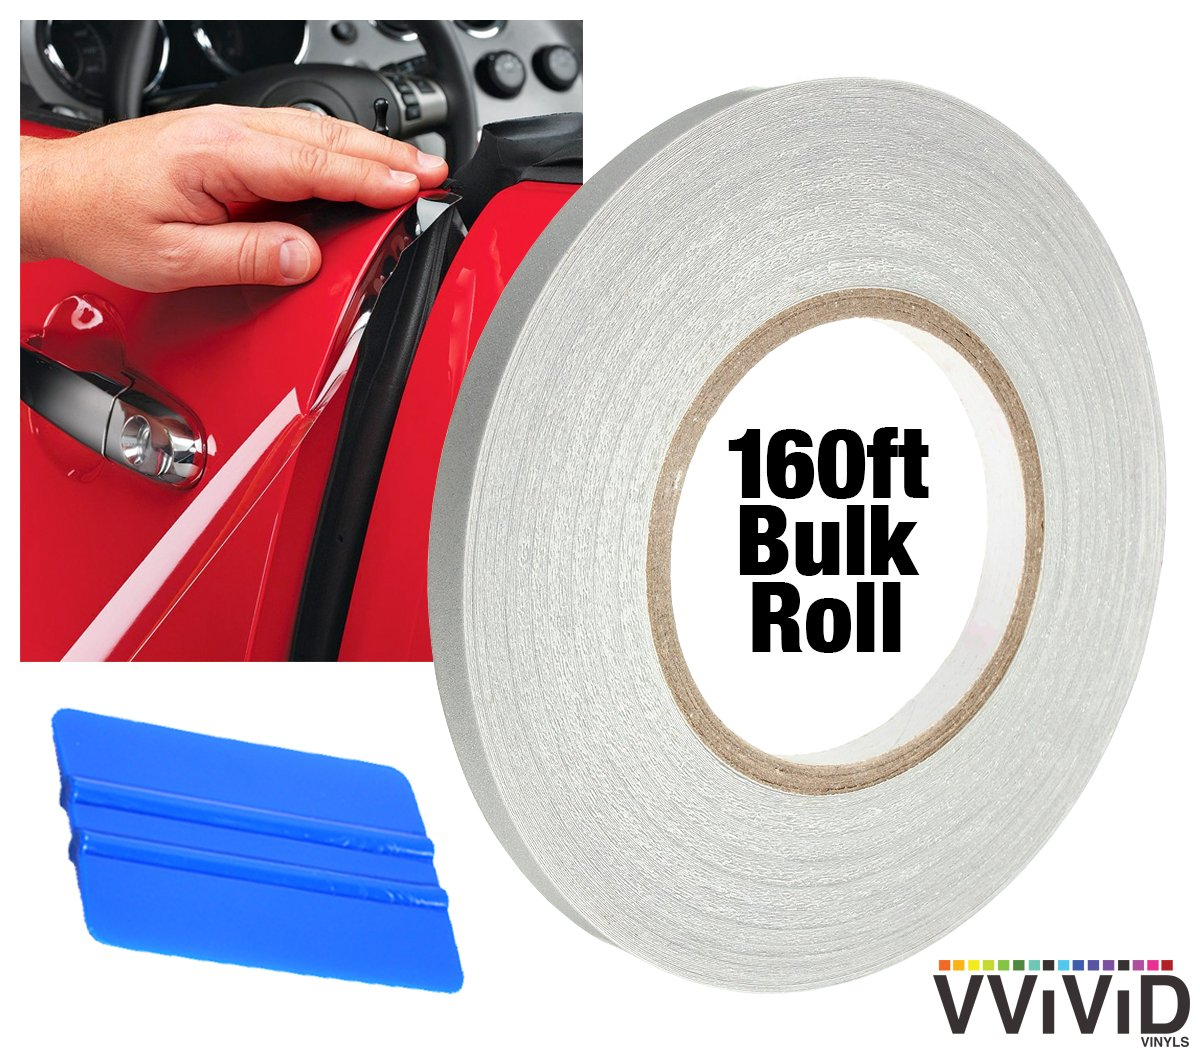 VViViD Clear Car Edge Sealer Paint Protection 160ft x .5'' Bulk Full-Car Roll Including 3M Squeegee by VViViD